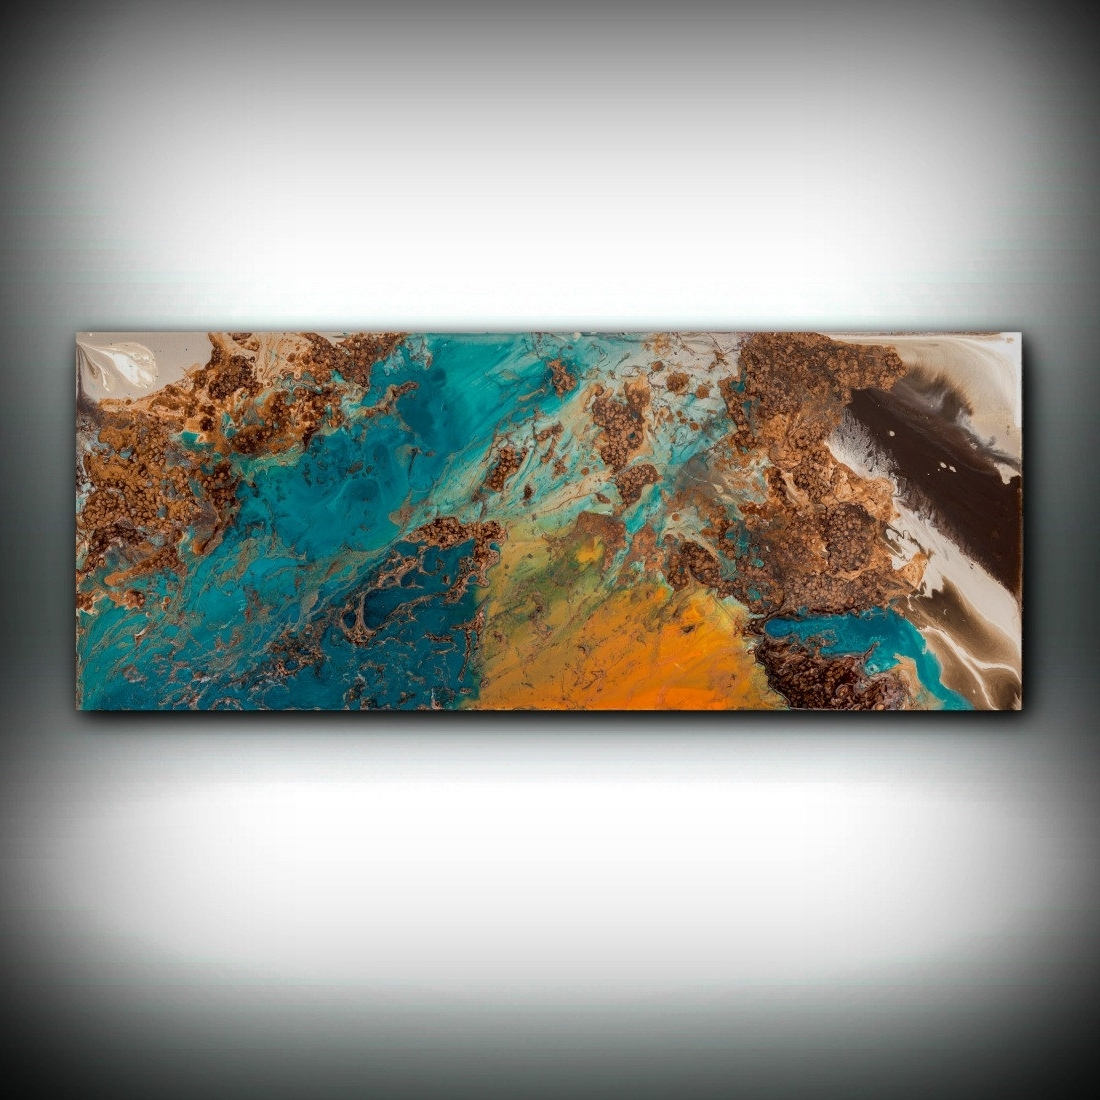 Well Known Turquoise And Brown Wall Art With Regard To Lovely Brown And Turquoise Wall Art For Beach Themed Australia Diy (View 14 of 15)